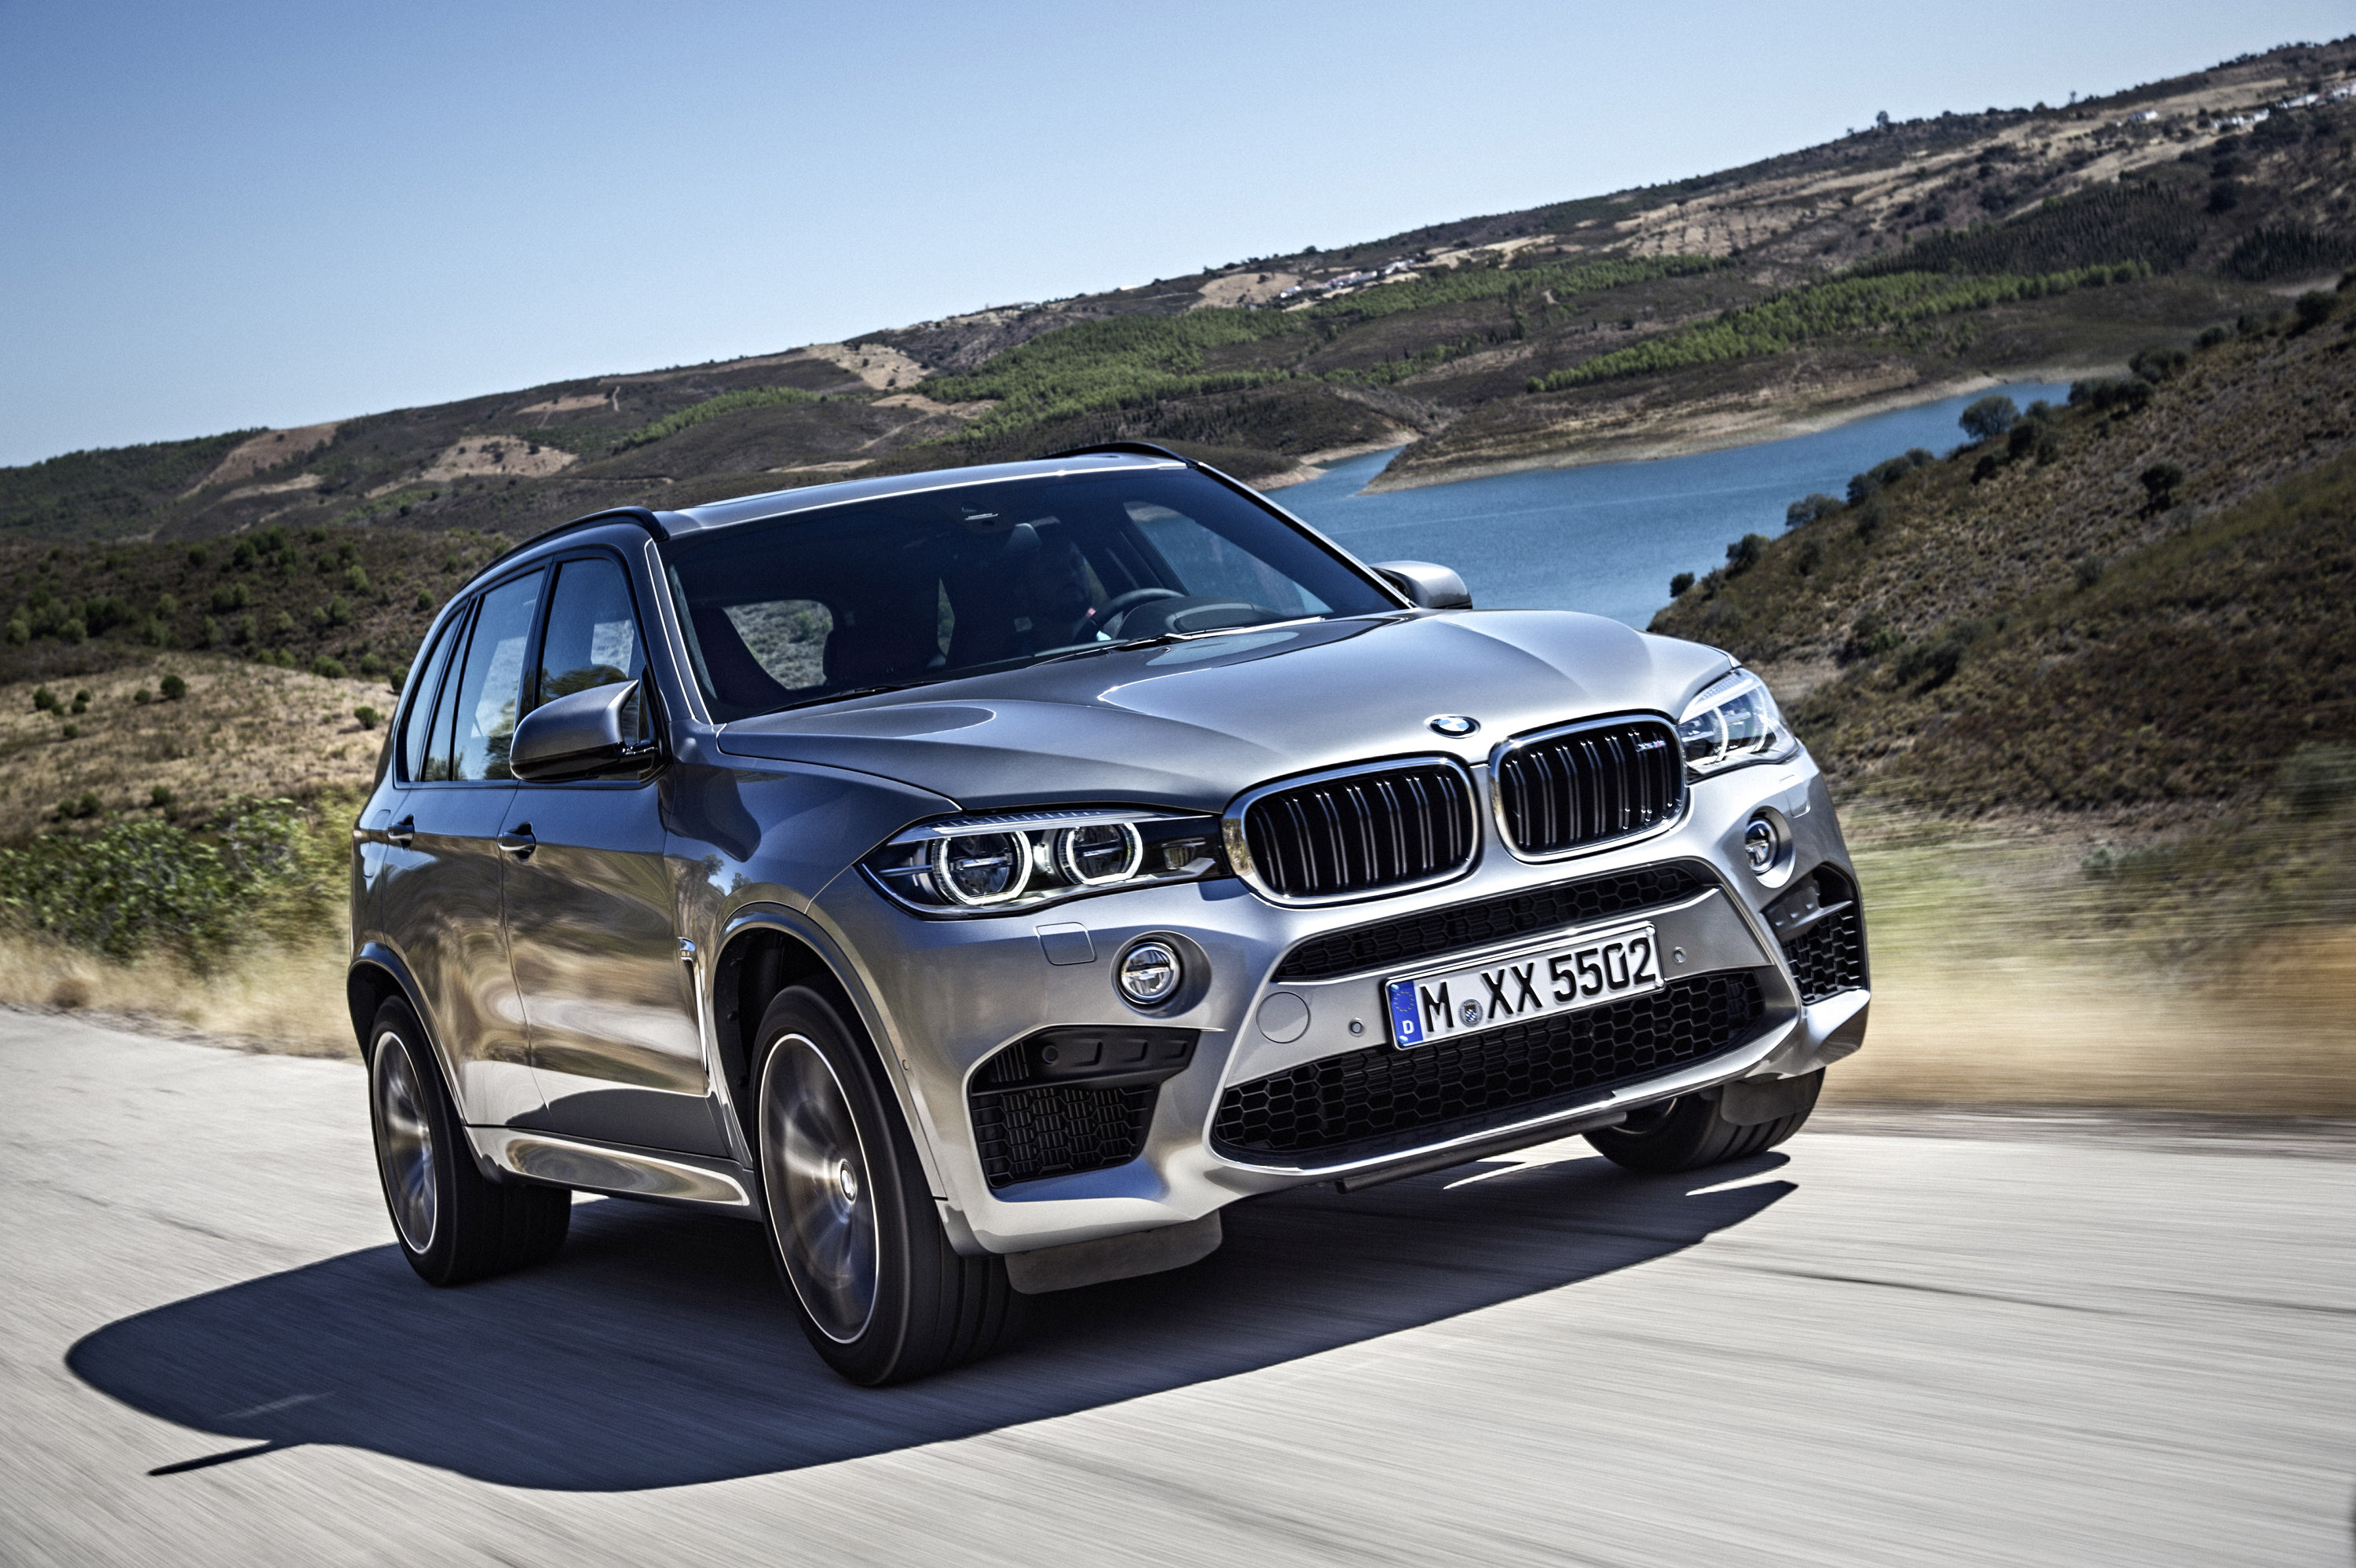 updates highres looks for hitch news fresh tech xdriv new bmw auto with driving the